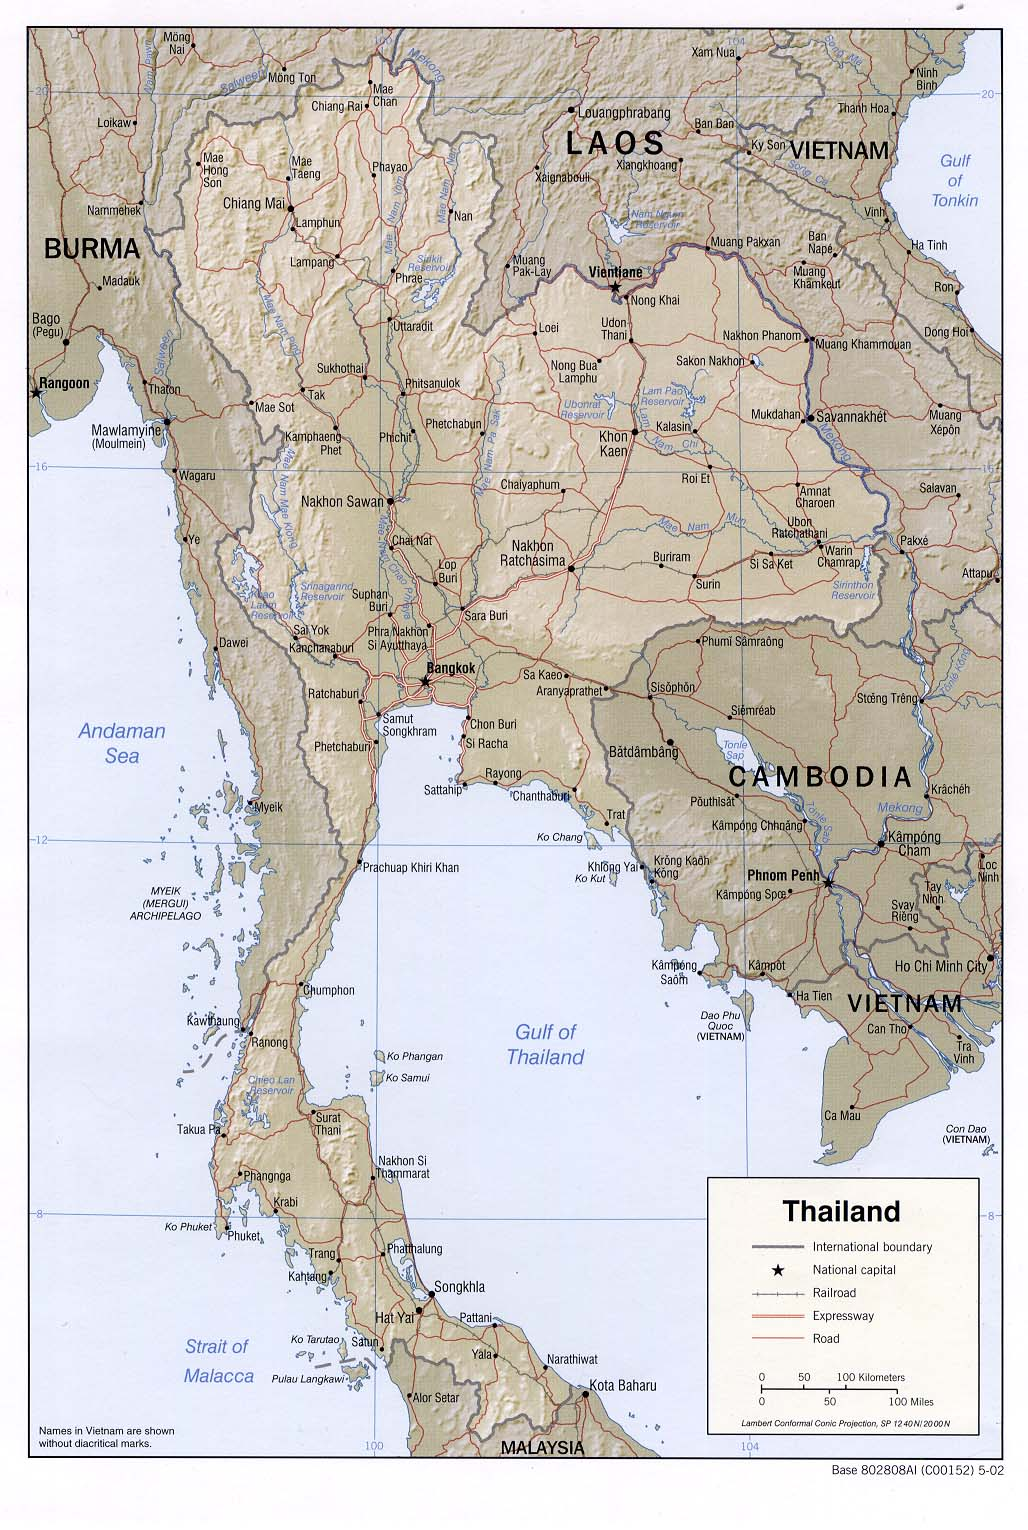 Thailand Maps - Perry-Castañeda Map Collection - UT Liry Online on map of western australia, map of western europe region, map of western netherlands, map of western usa, map of western haiti, map of western central africa, map of western syria, map of western arabia, map of western israel, map of western france, map of western madagascar, map of western world, map of western central america, map of western indian ocean, map of western russia, map of western new guinea, map of western united states of america, map of western europe 2012, map of western italy, map of western west africa,